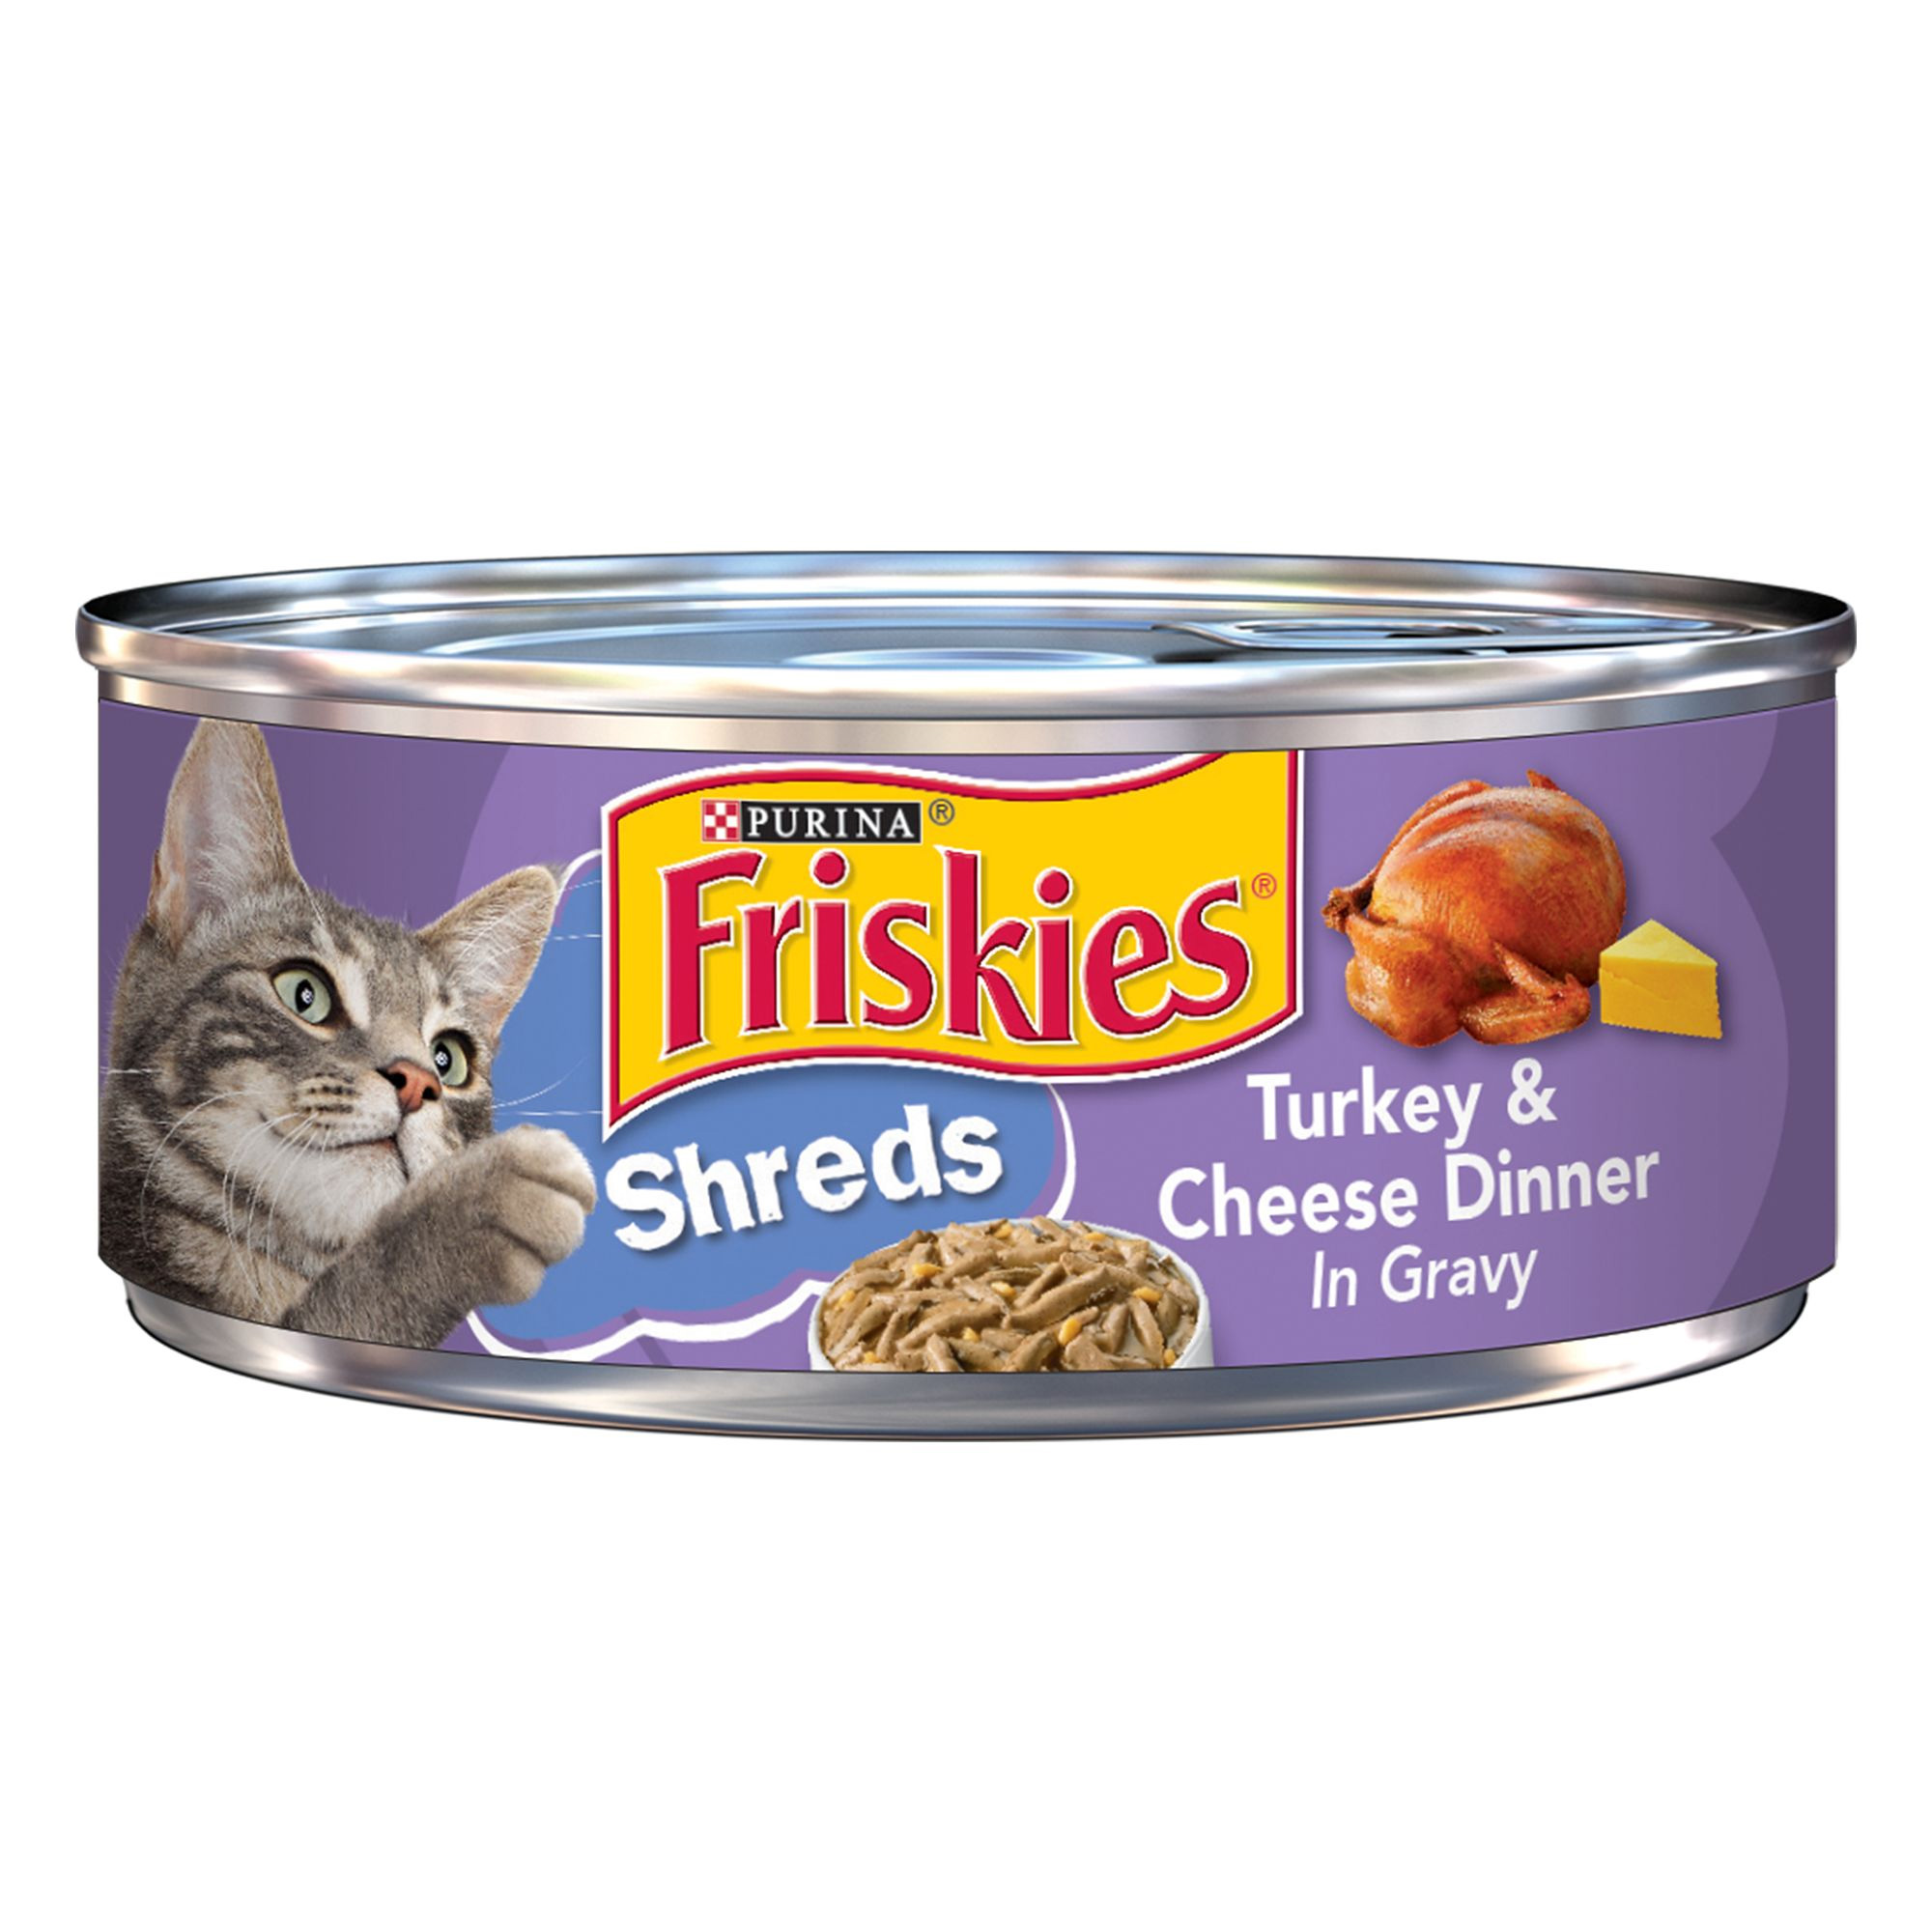 Friskies Turkey and Cheese Dinner Shreds 99805